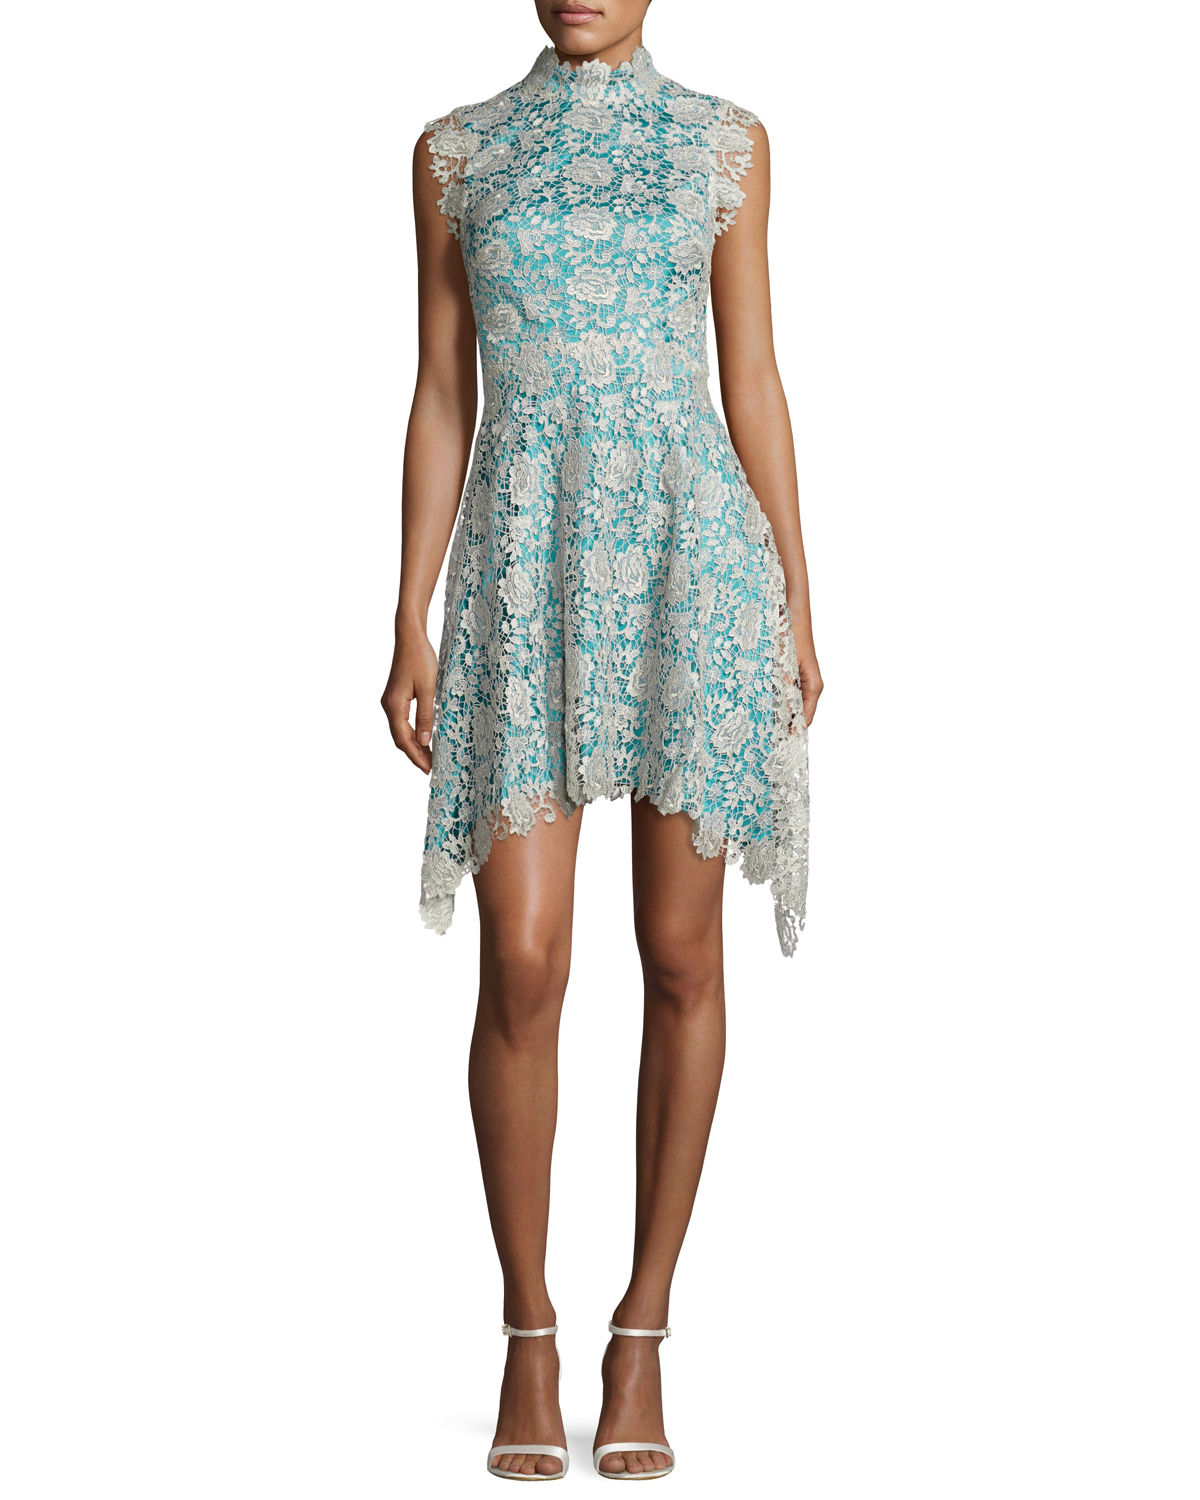 Izzy Sleeveless Floral Lace Fit-and-Flare Dress, Silver/Blue